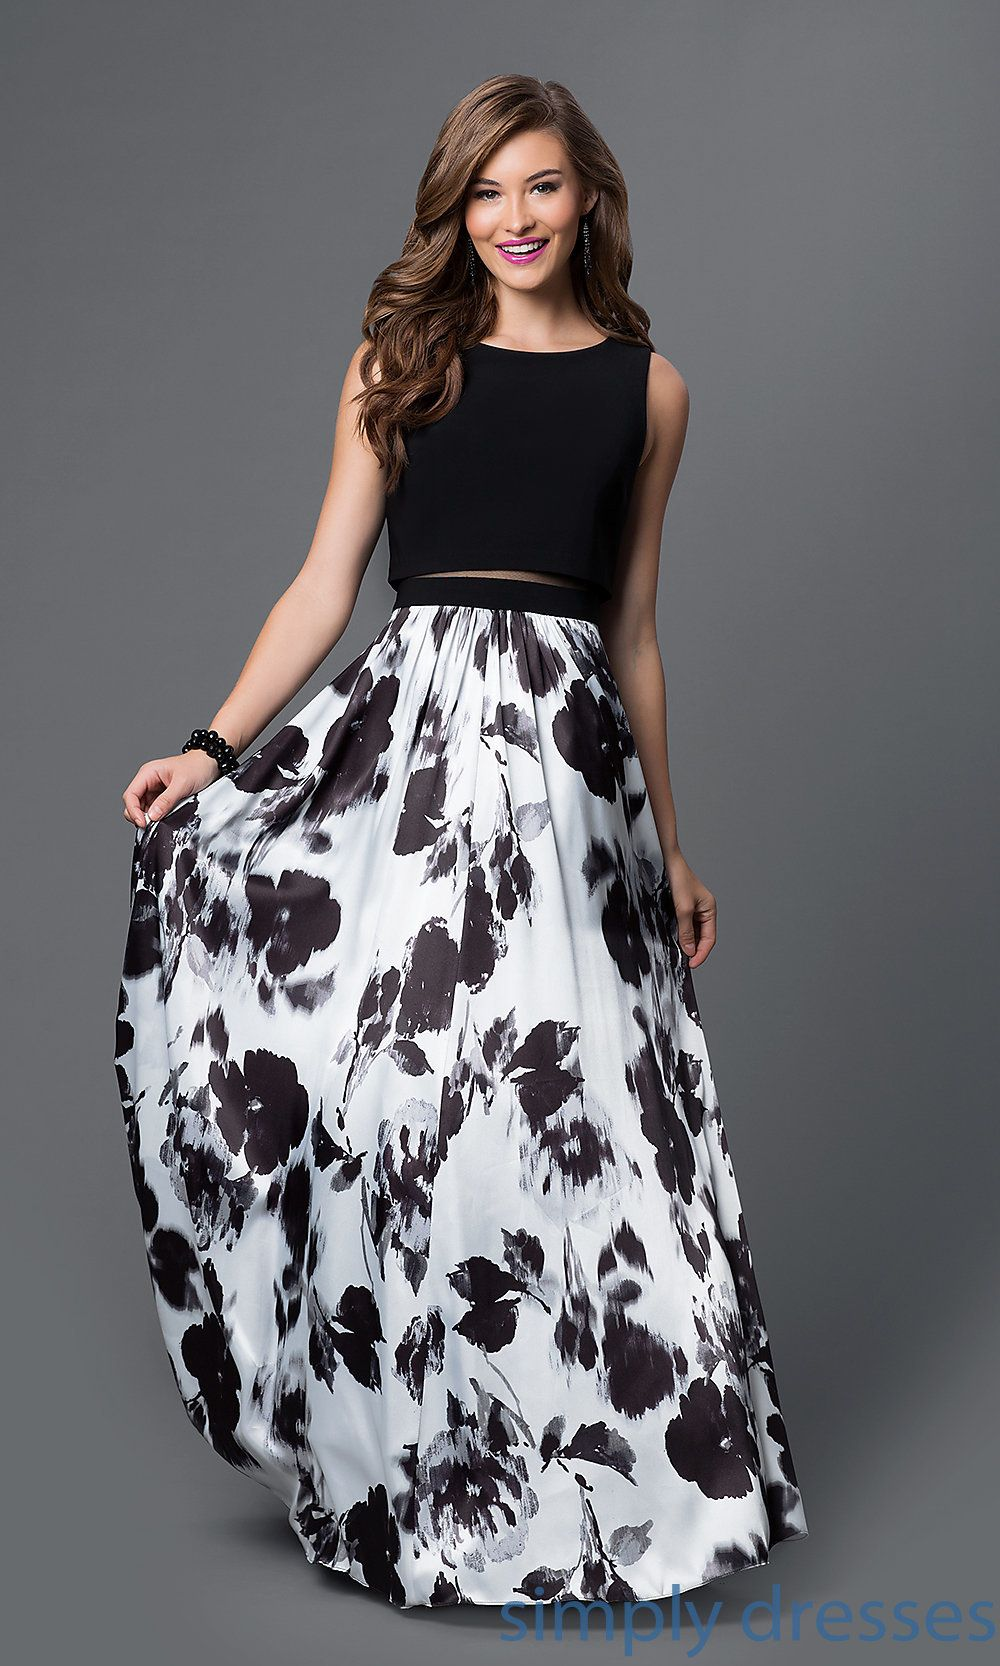 Shop long floral-print evening gowns and black and white dresses at Simply  Dresses. Mock two-piece prom dresses with sheer mesh midriffs for formals. d4e3b03a0c5e